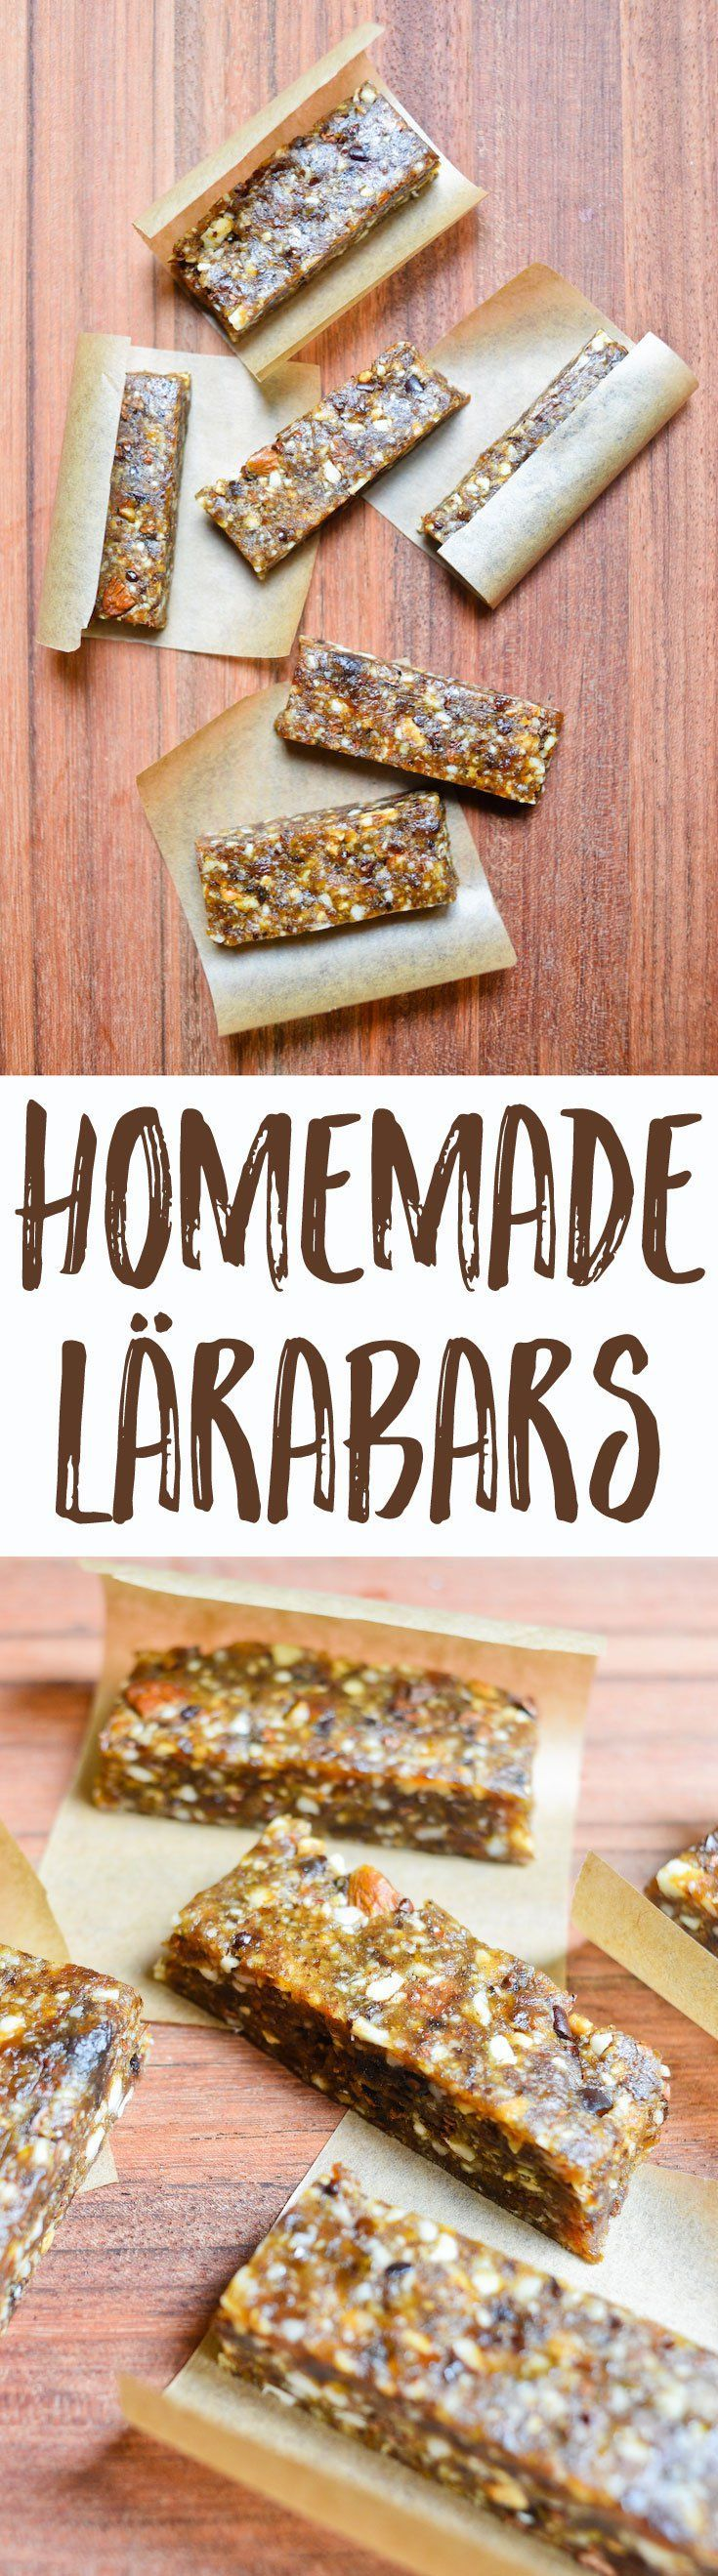 Addicted to energy bars and looking for a way to make homemade Lärabars? This easy formula gets you all-natural power bars for a delicious, portable snack.